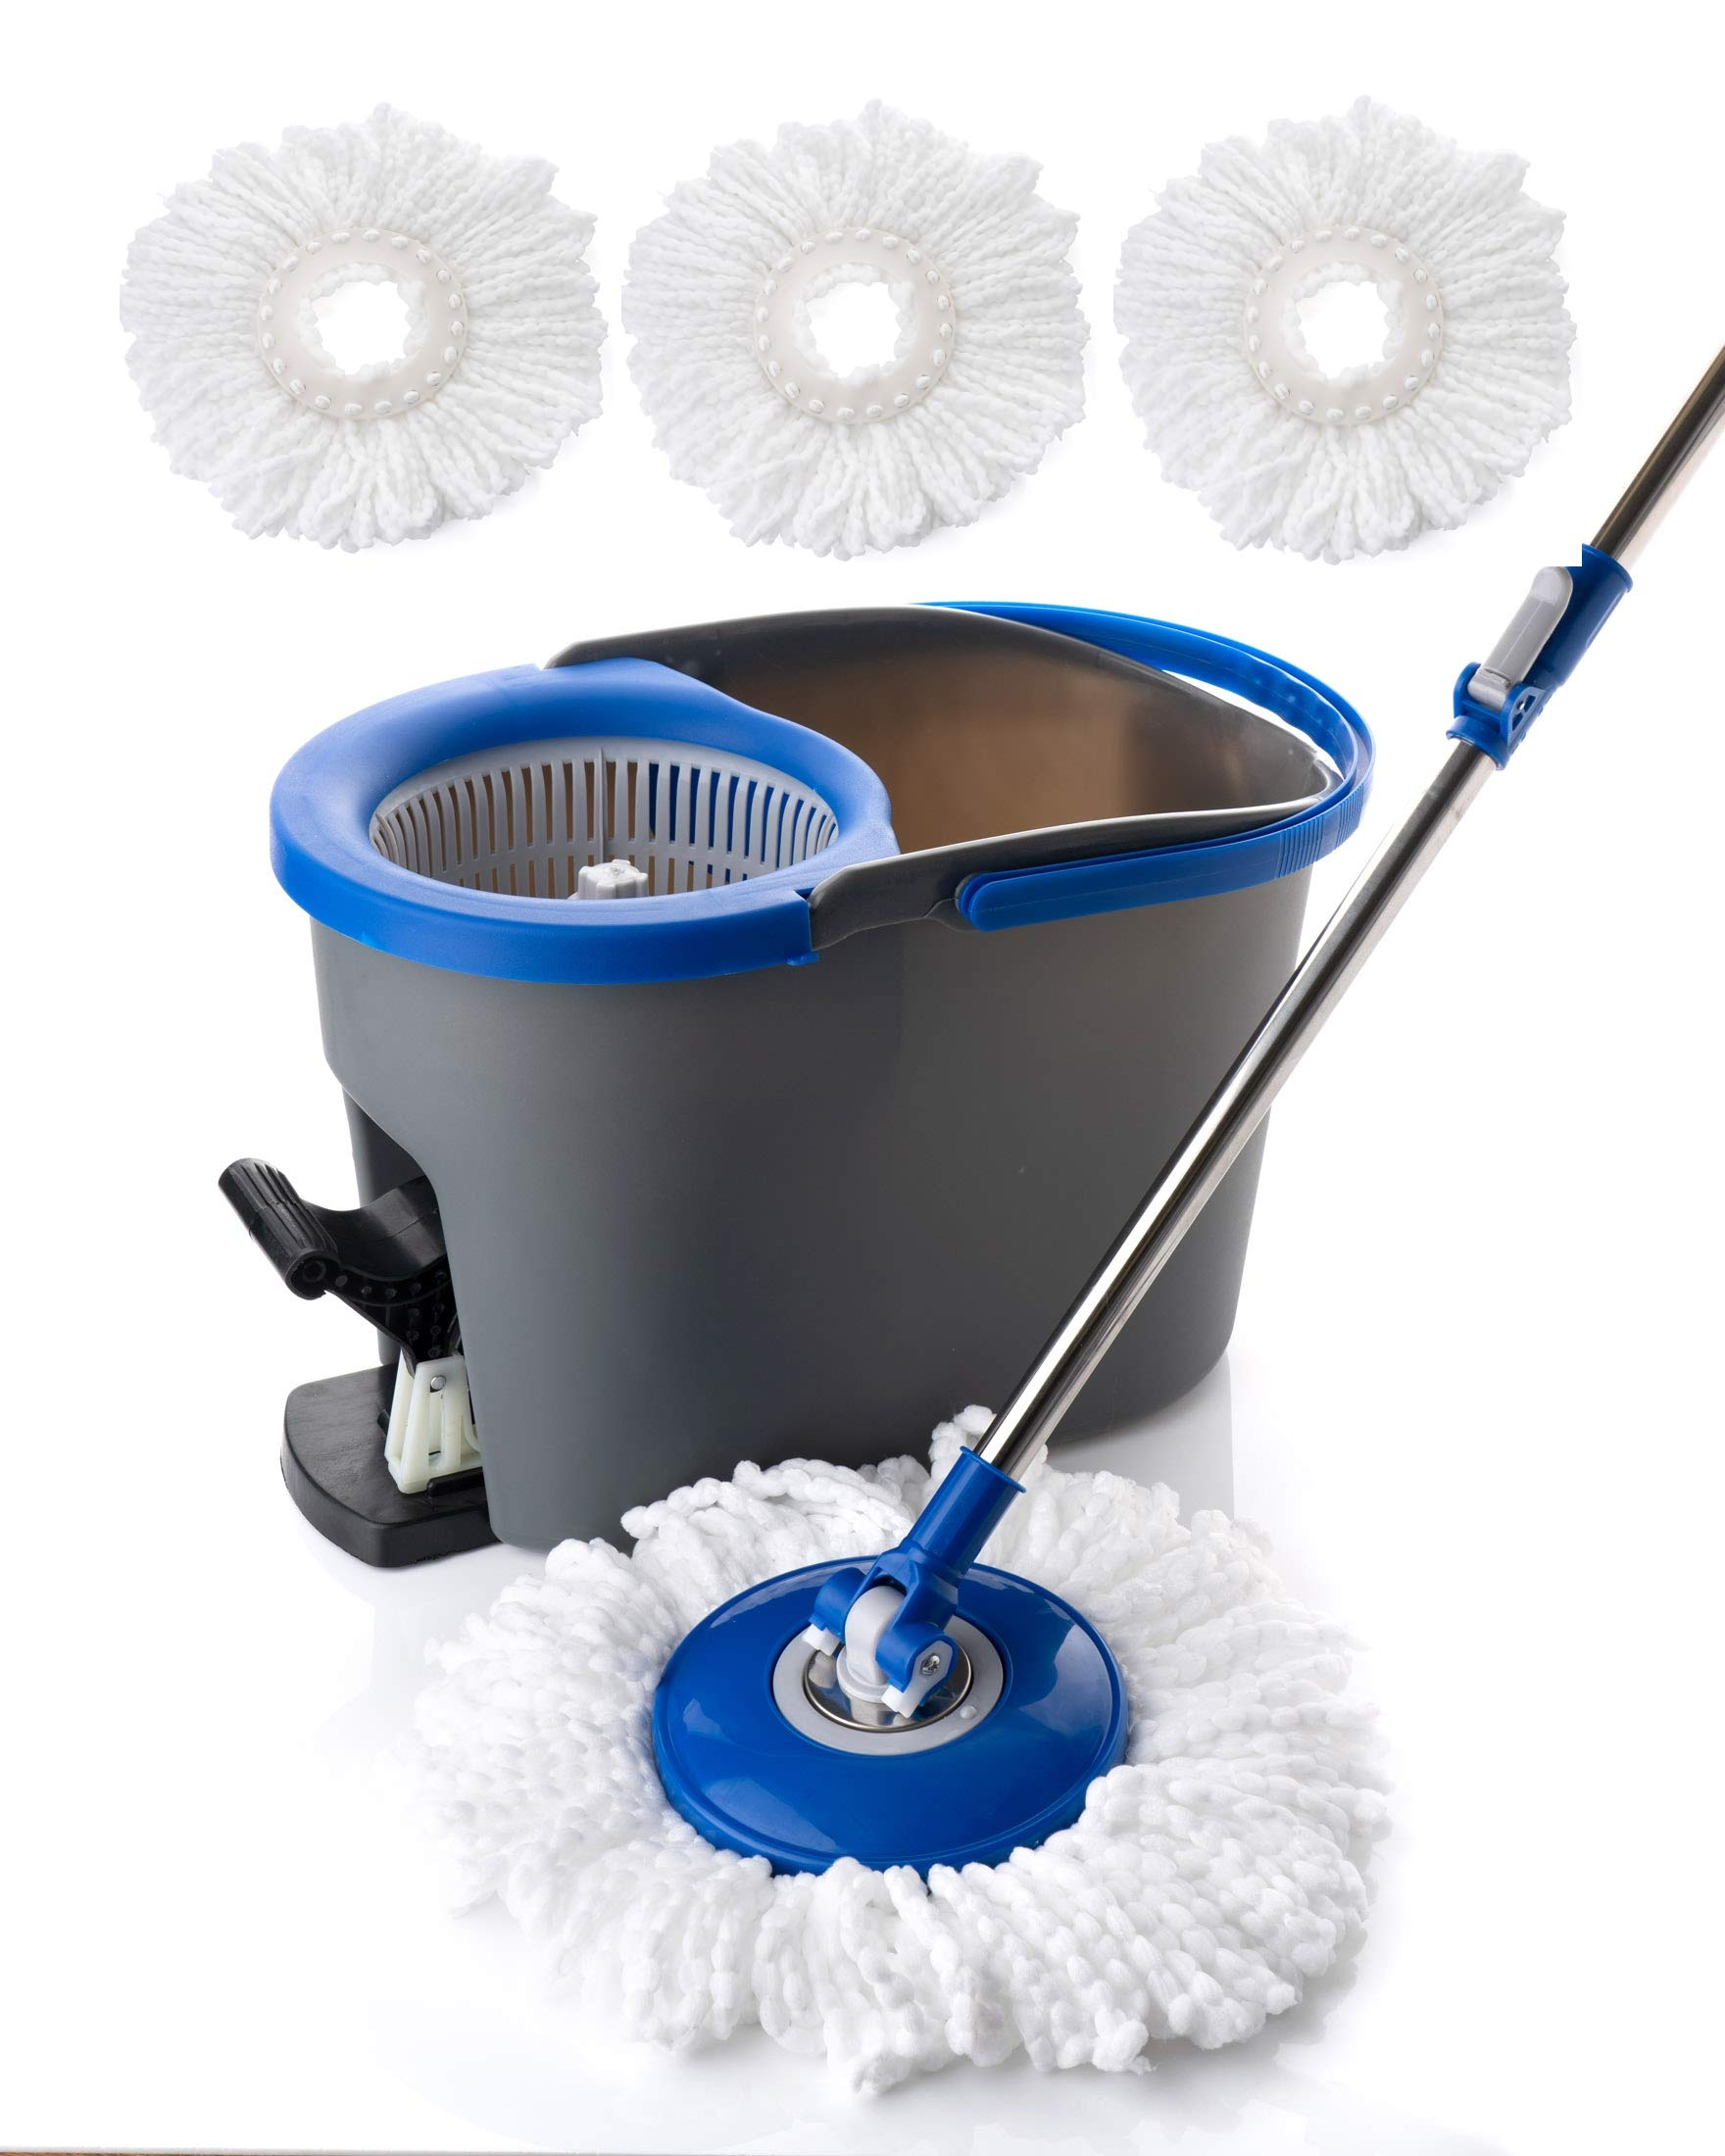 Simpli-Magic 79154 Spin Cleaning System with 3 Microfiber Mop Head Refills Included, Industrial by Simpli-Magic (Image #5)